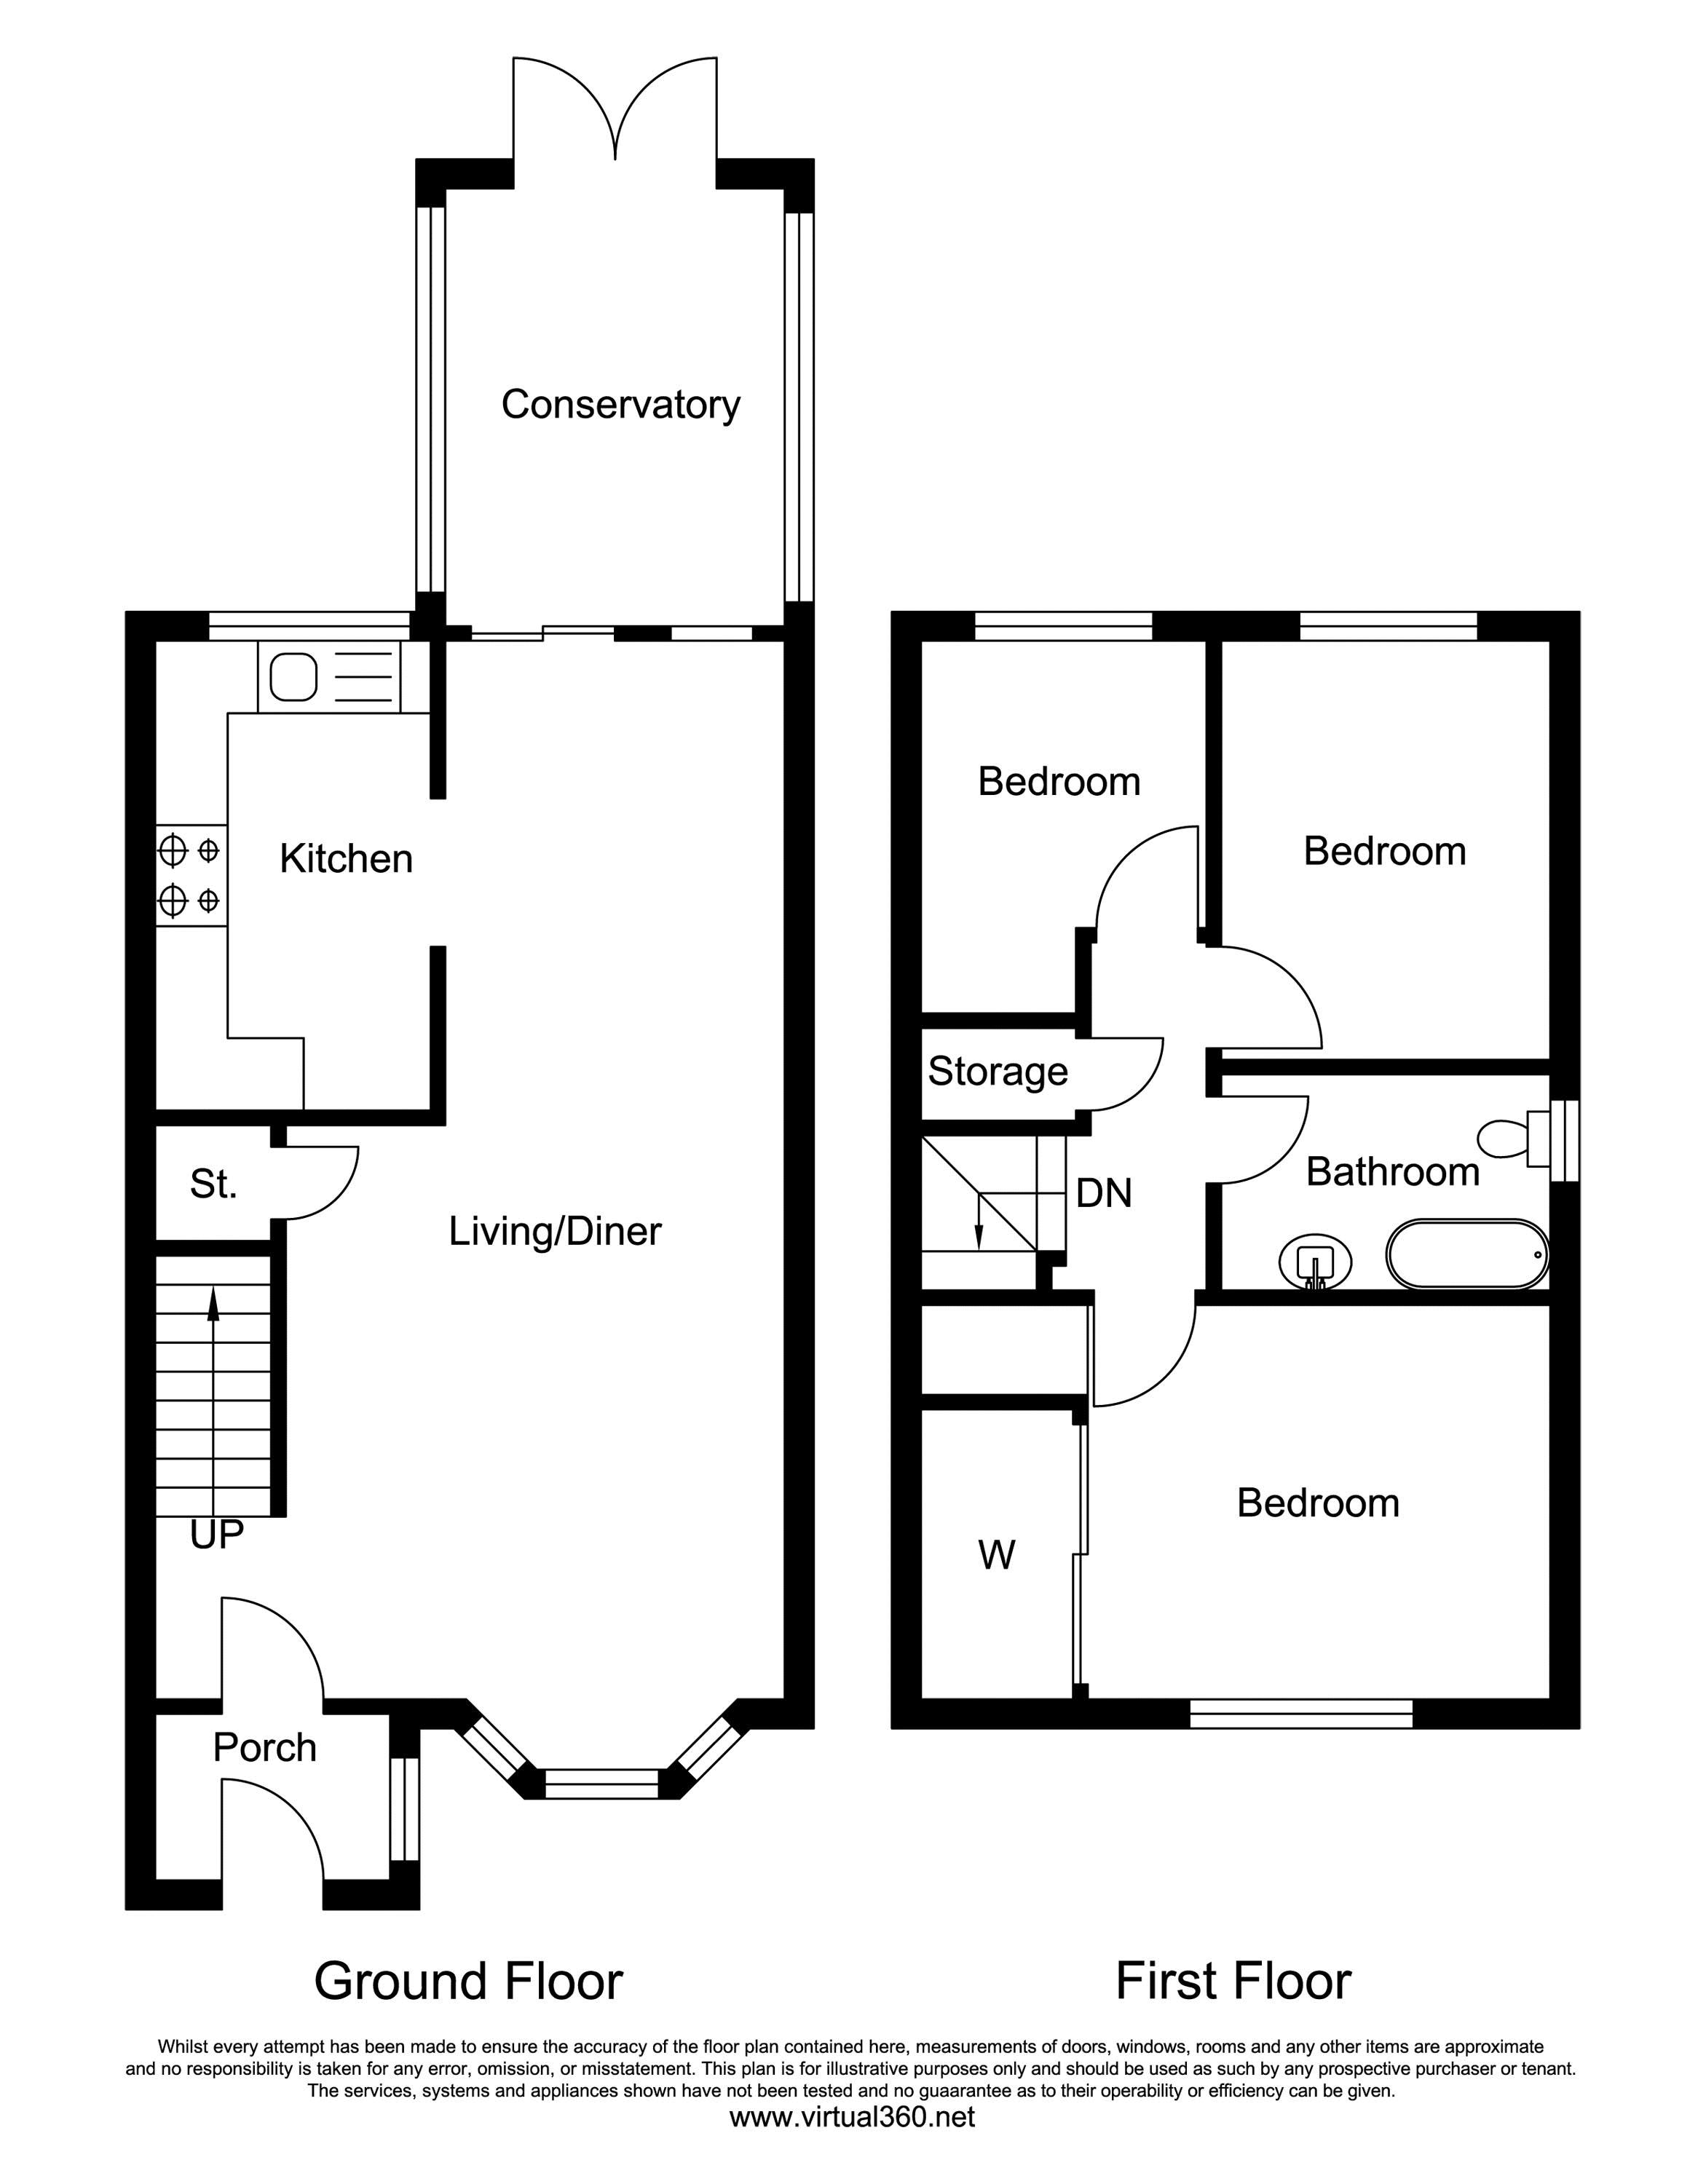 Barford Drive, Wilmslow floor plan